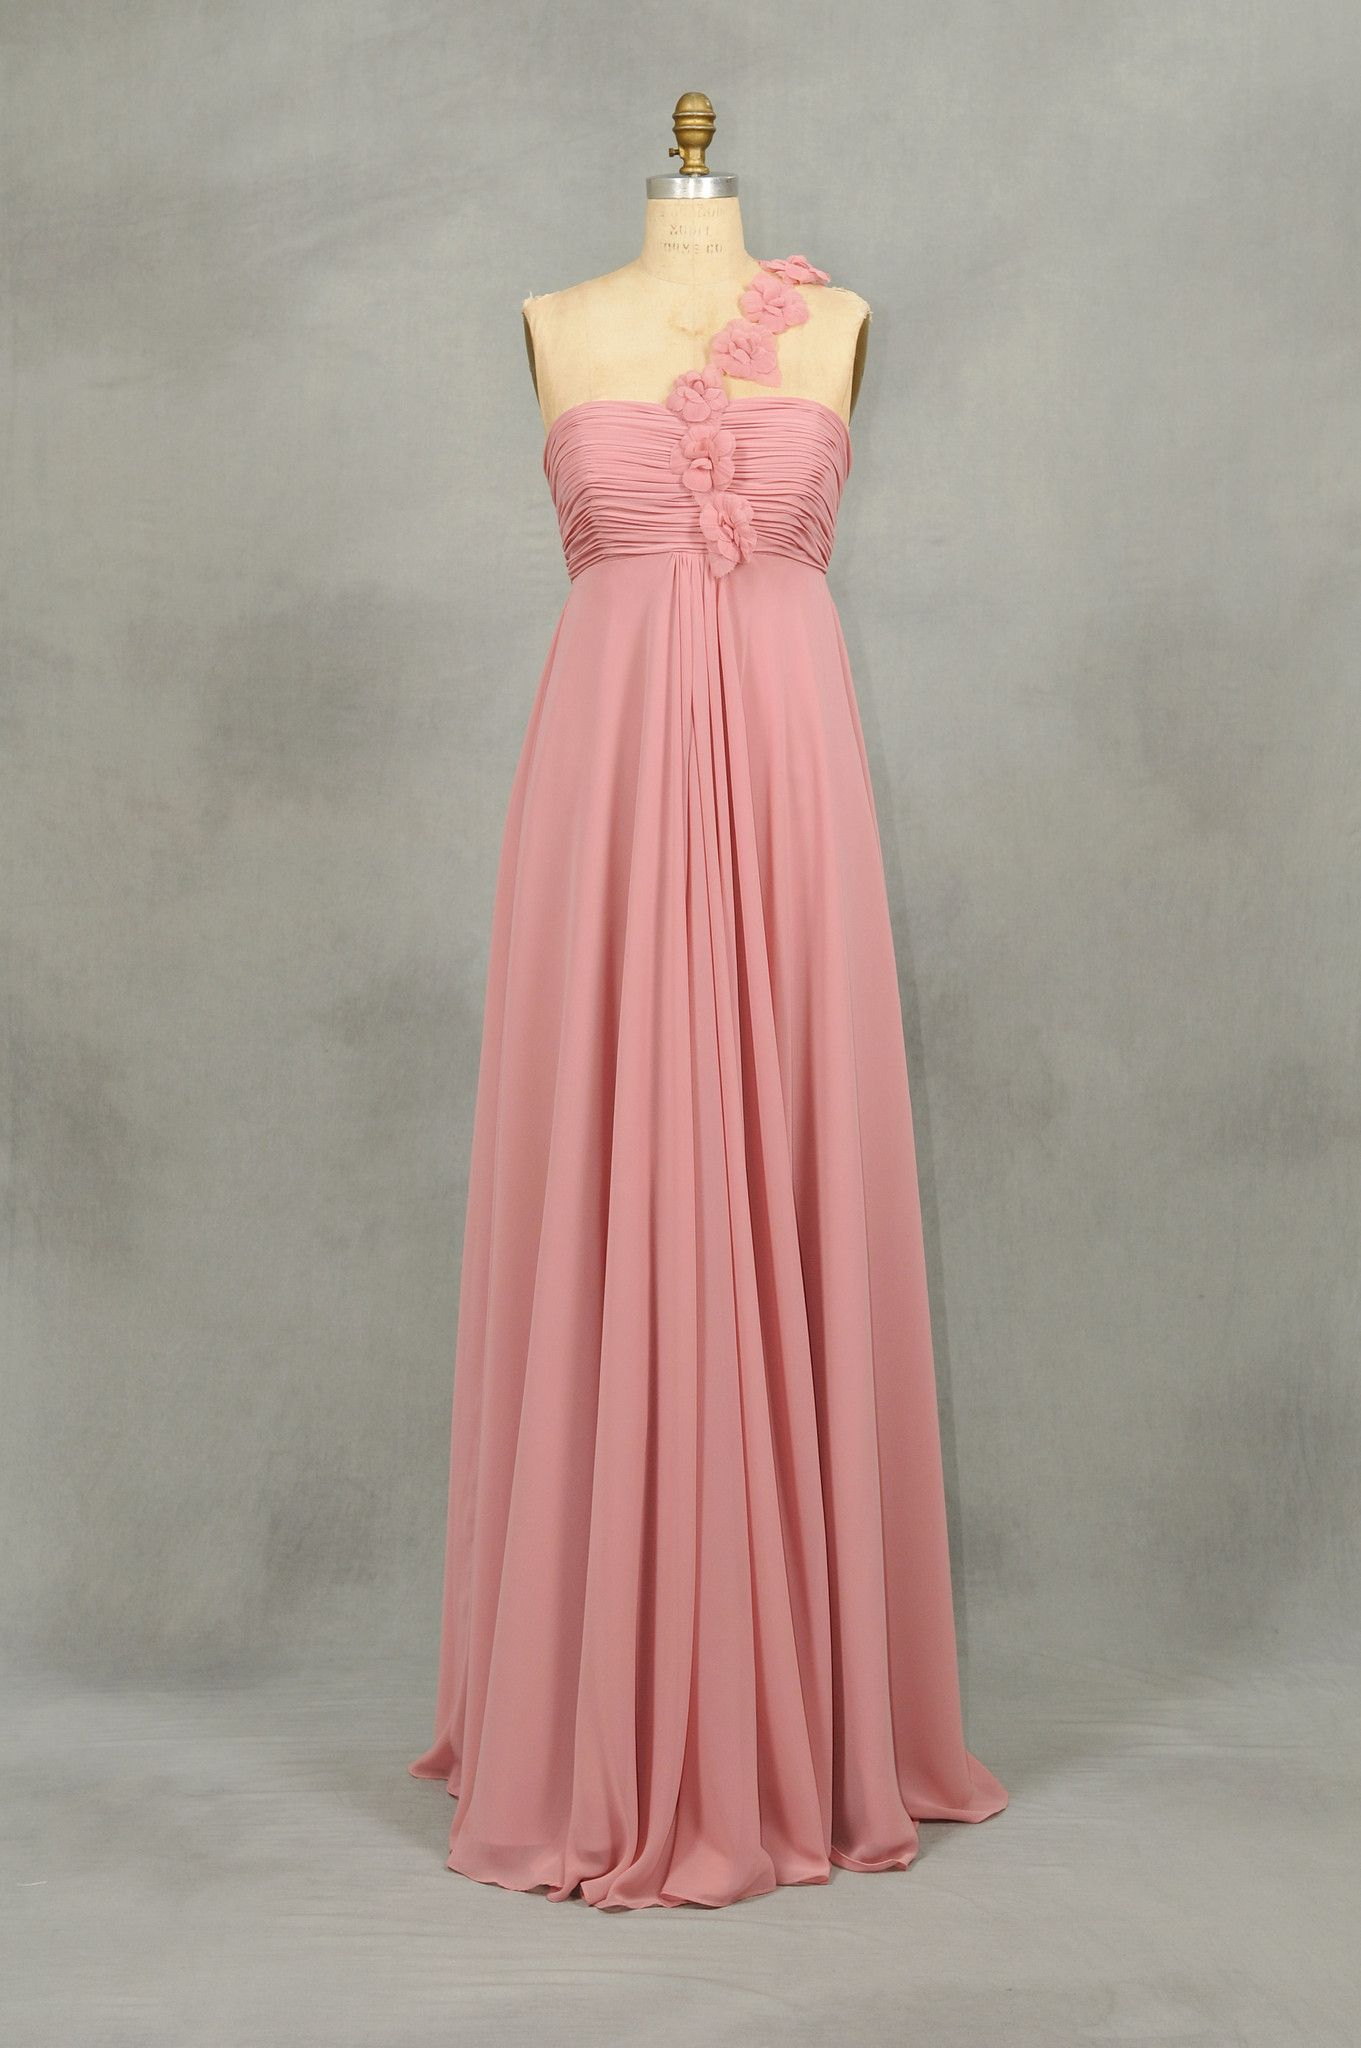 M1034 | Maternity bridesmaid dresses, Bridal parties and Bridal showers